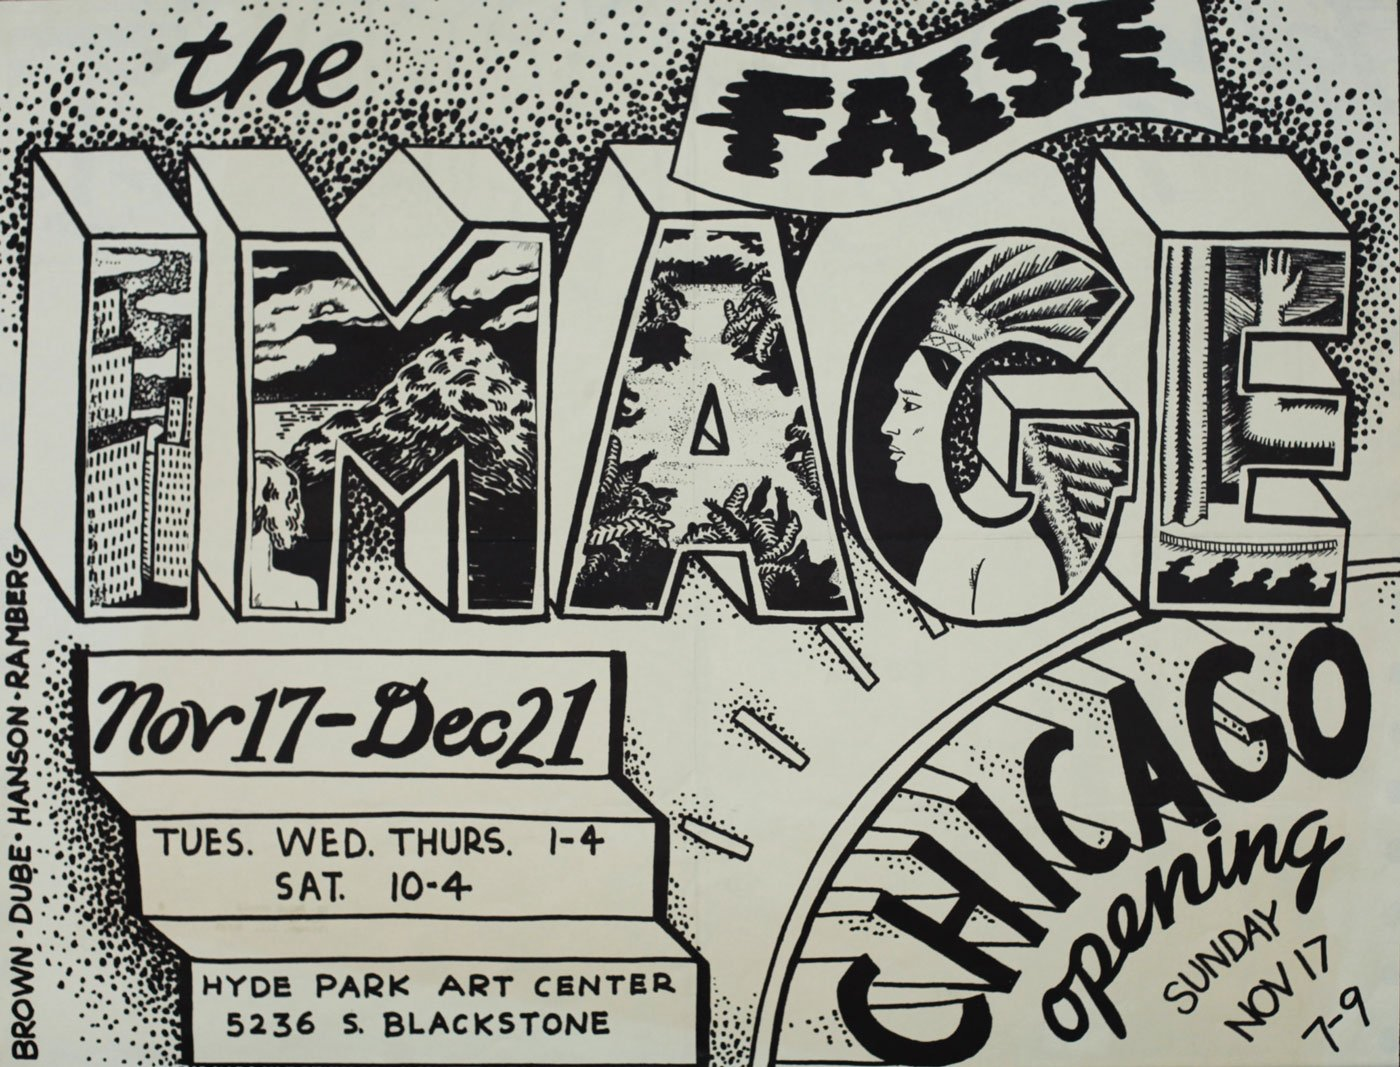 An ad for the Hyde Park Art Center's False Image exhibition, 1968